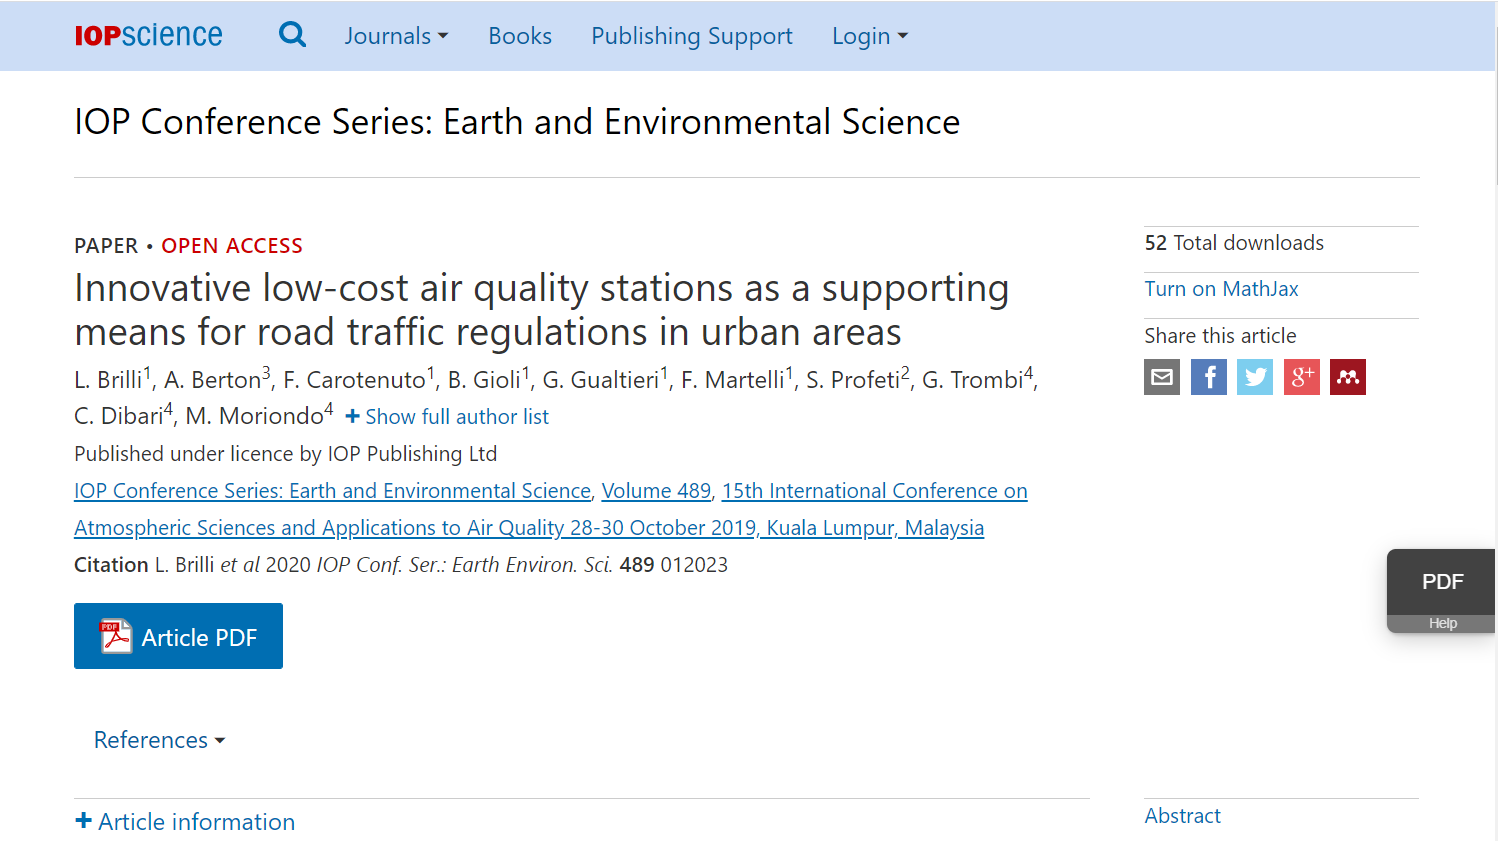 Innovative low-cost air quality stations as a supporting means for road traffic regulations in urban areas